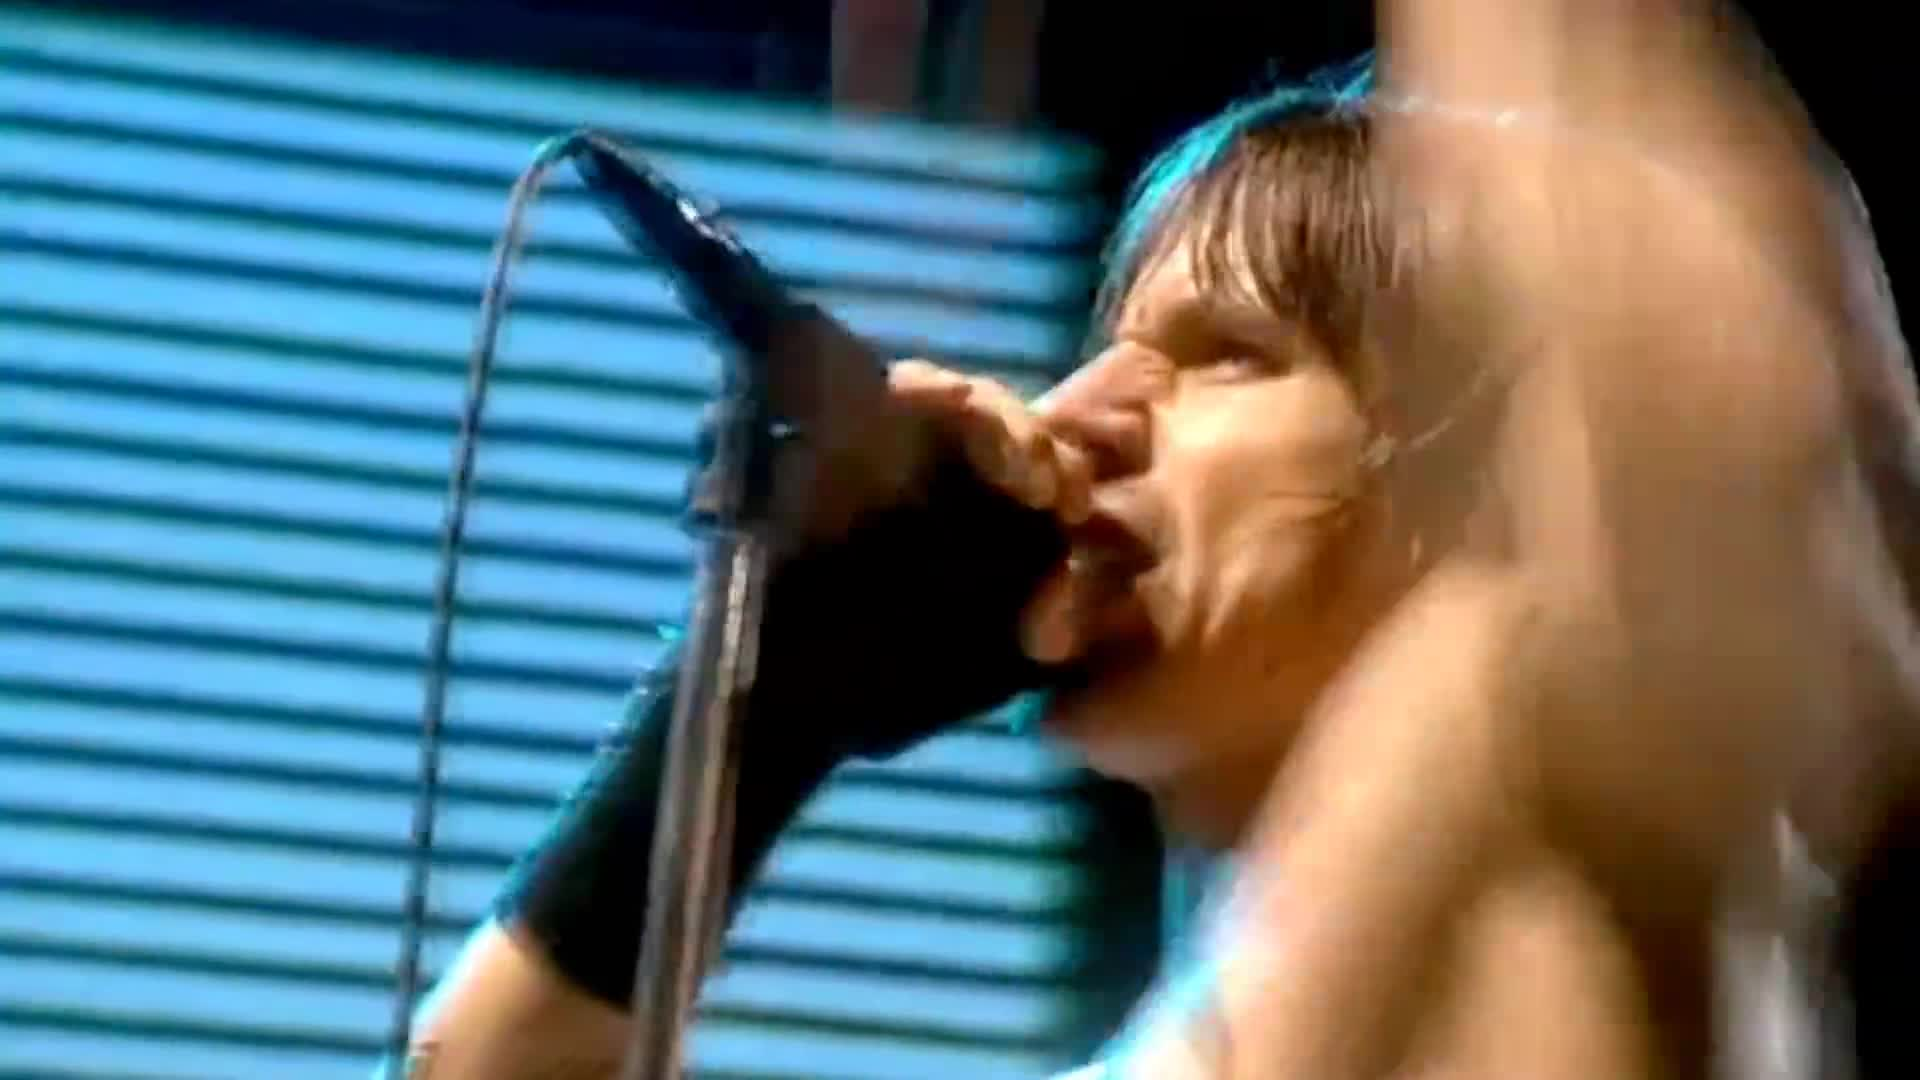 c., chili, h., hot, p., peppers, r., r.h.c.p., red, rhcp, Red Hot Chili Peppers - Can't Stop - Live at Slane Castle GIFs